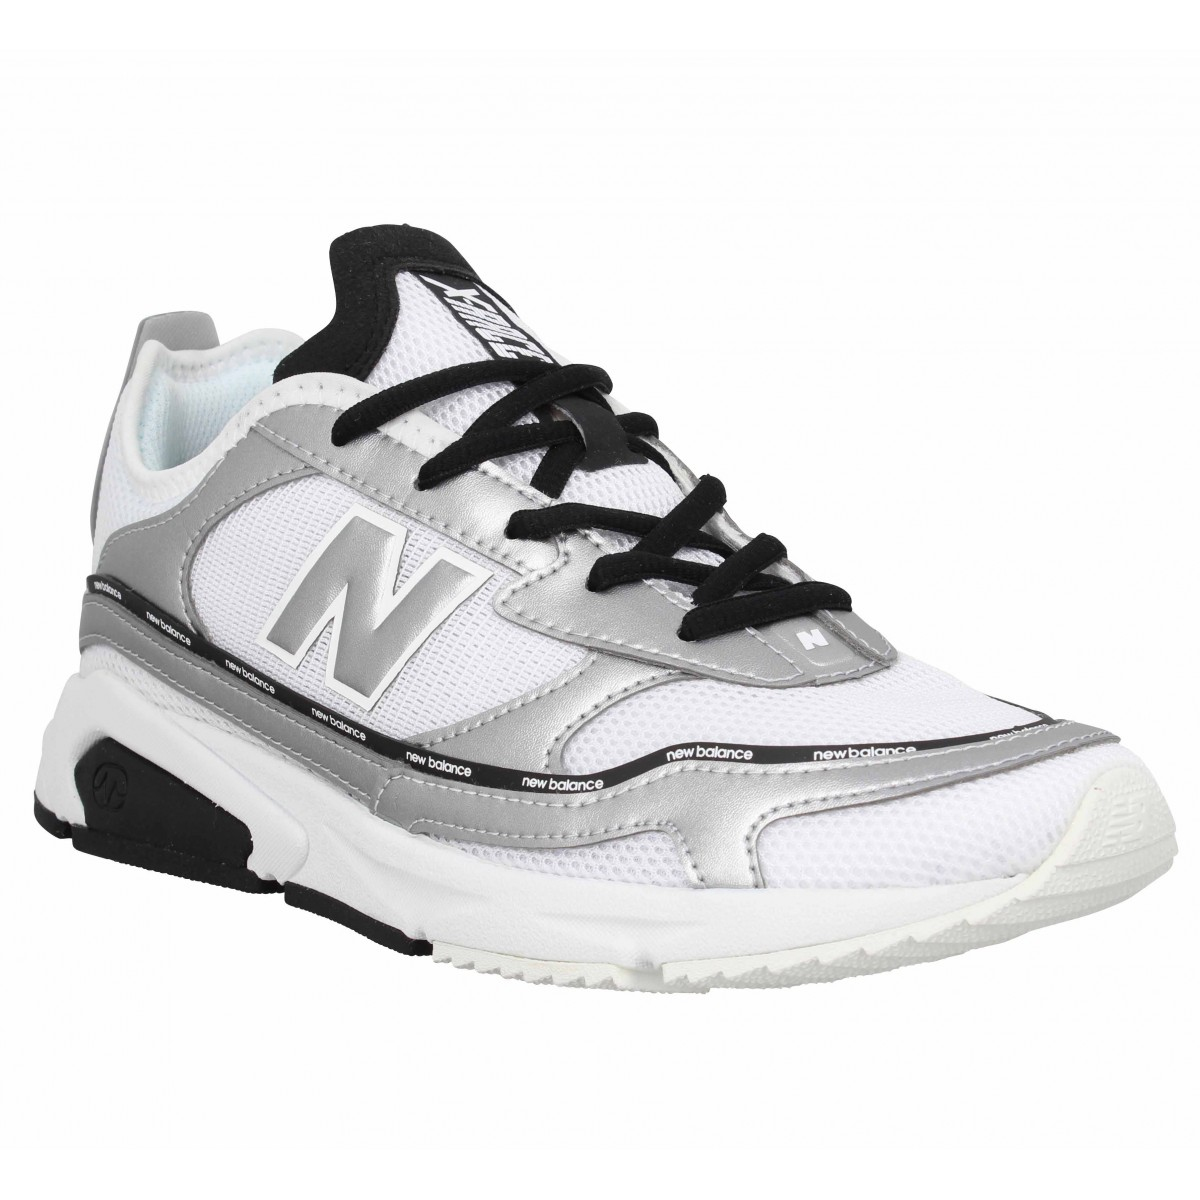 New Balance Marque Wsx Rc Toile...